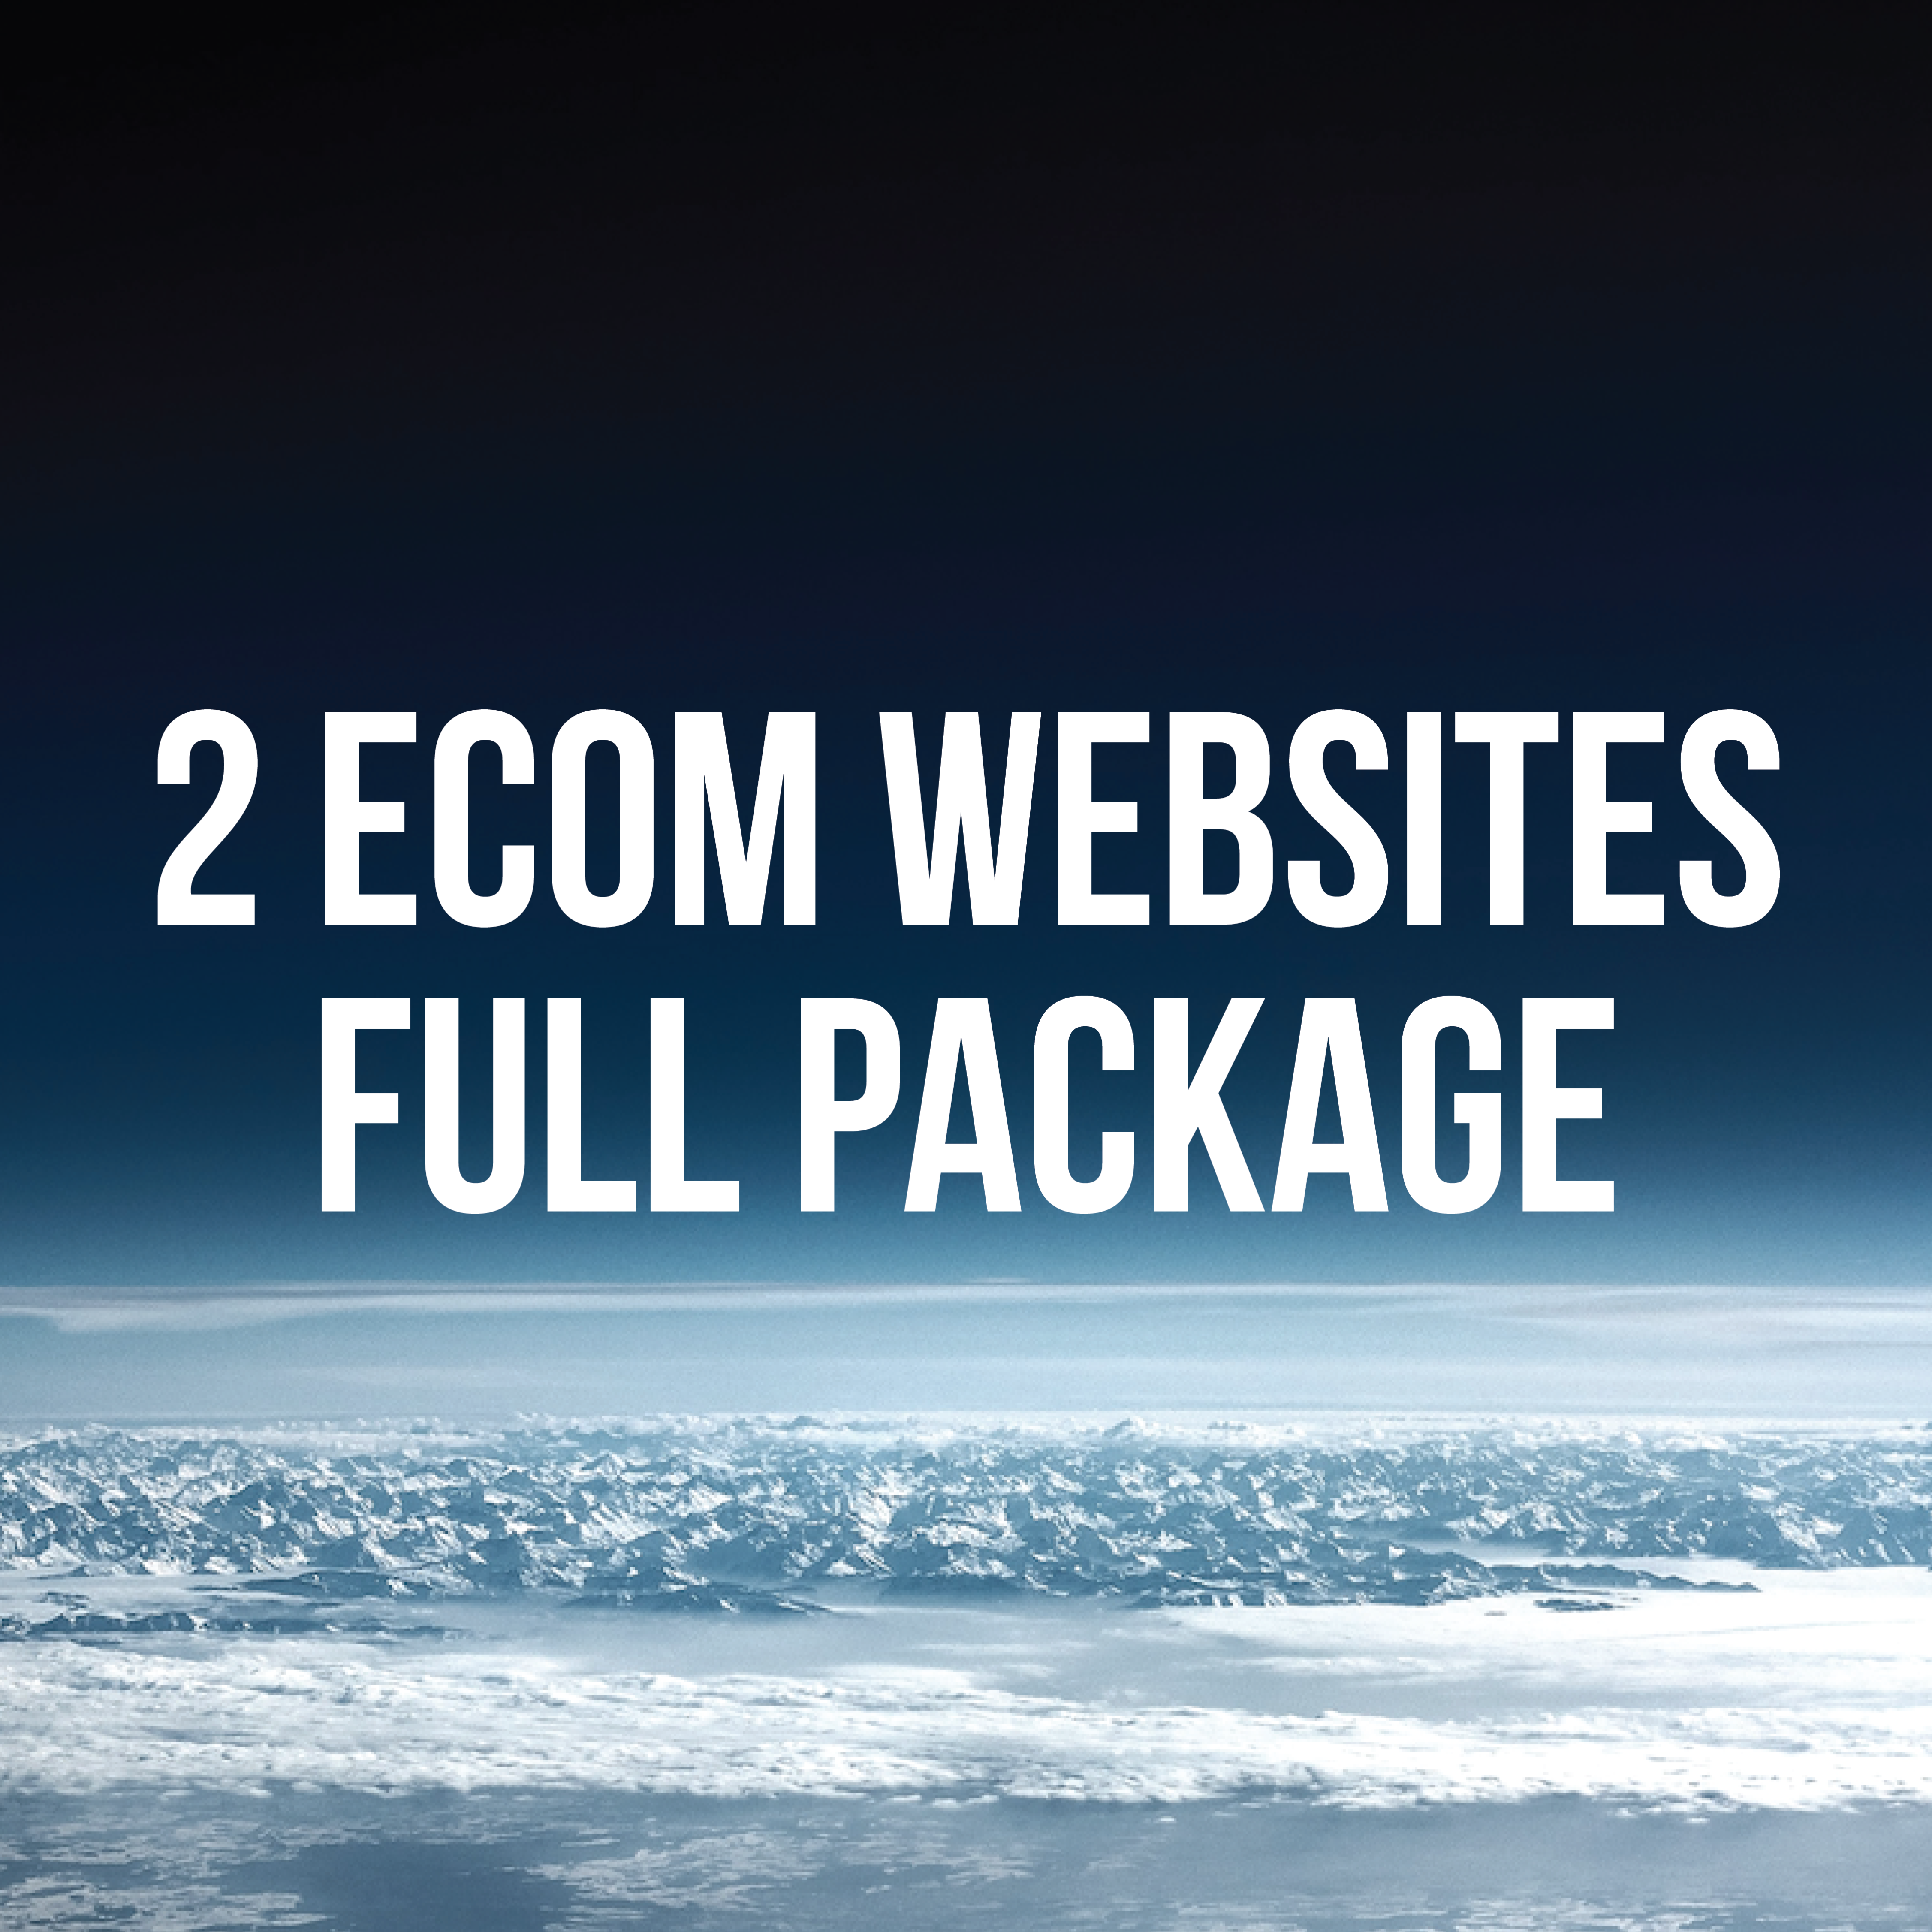 2 ECOM WEBSITES